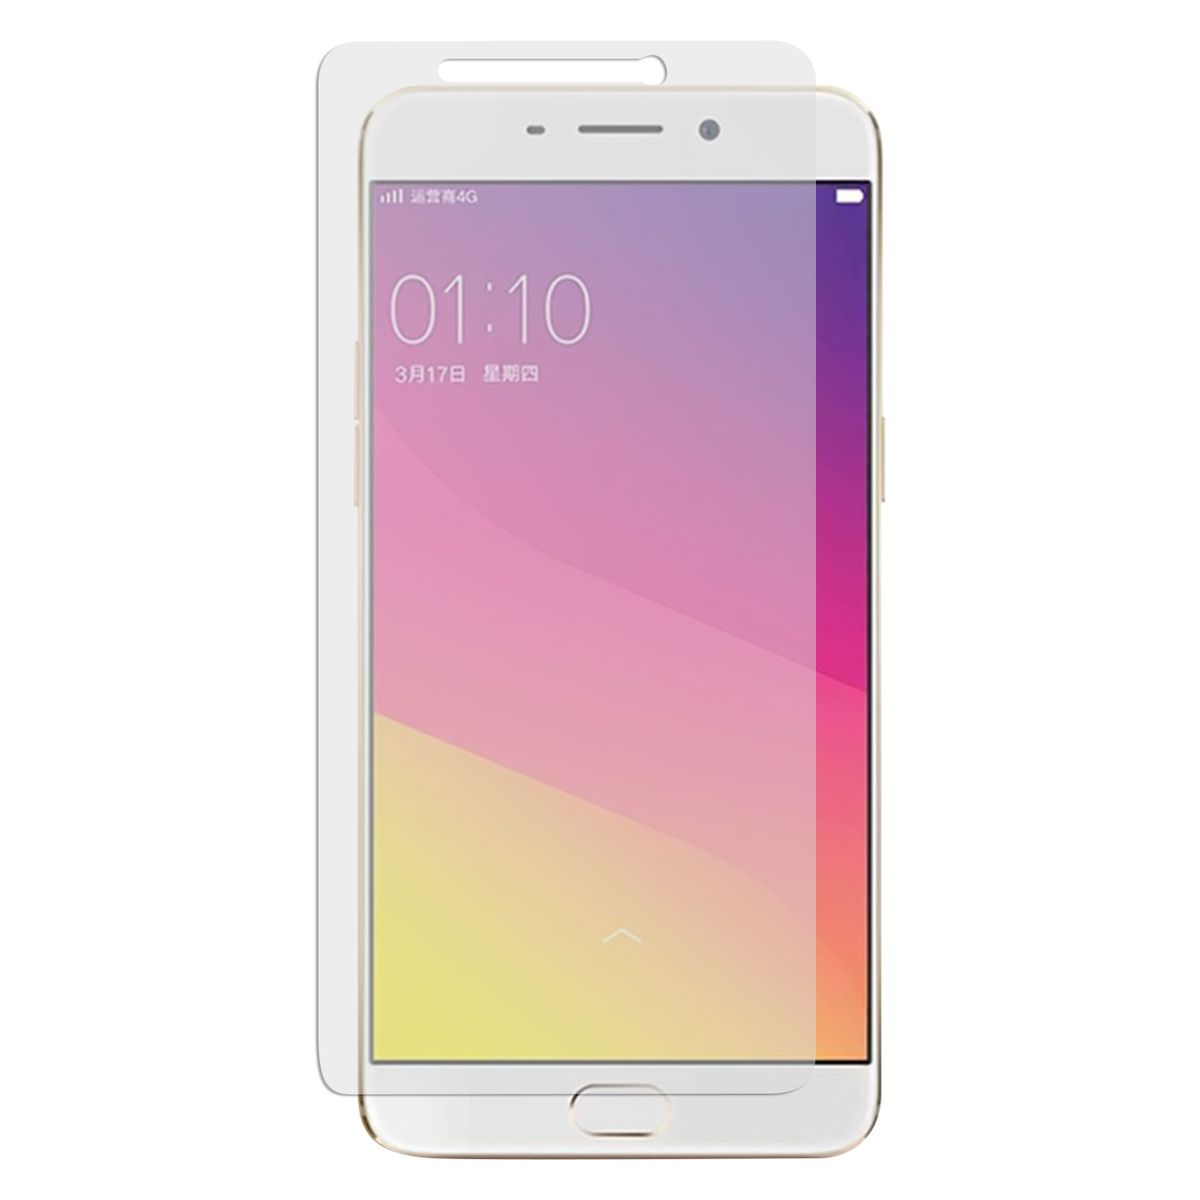 Buy Oppo A37 Premium Tempered Screen At Lowest Price Glass Protector Cover Scratch Proof Shatterproof Guard Oleo Phobic Coating